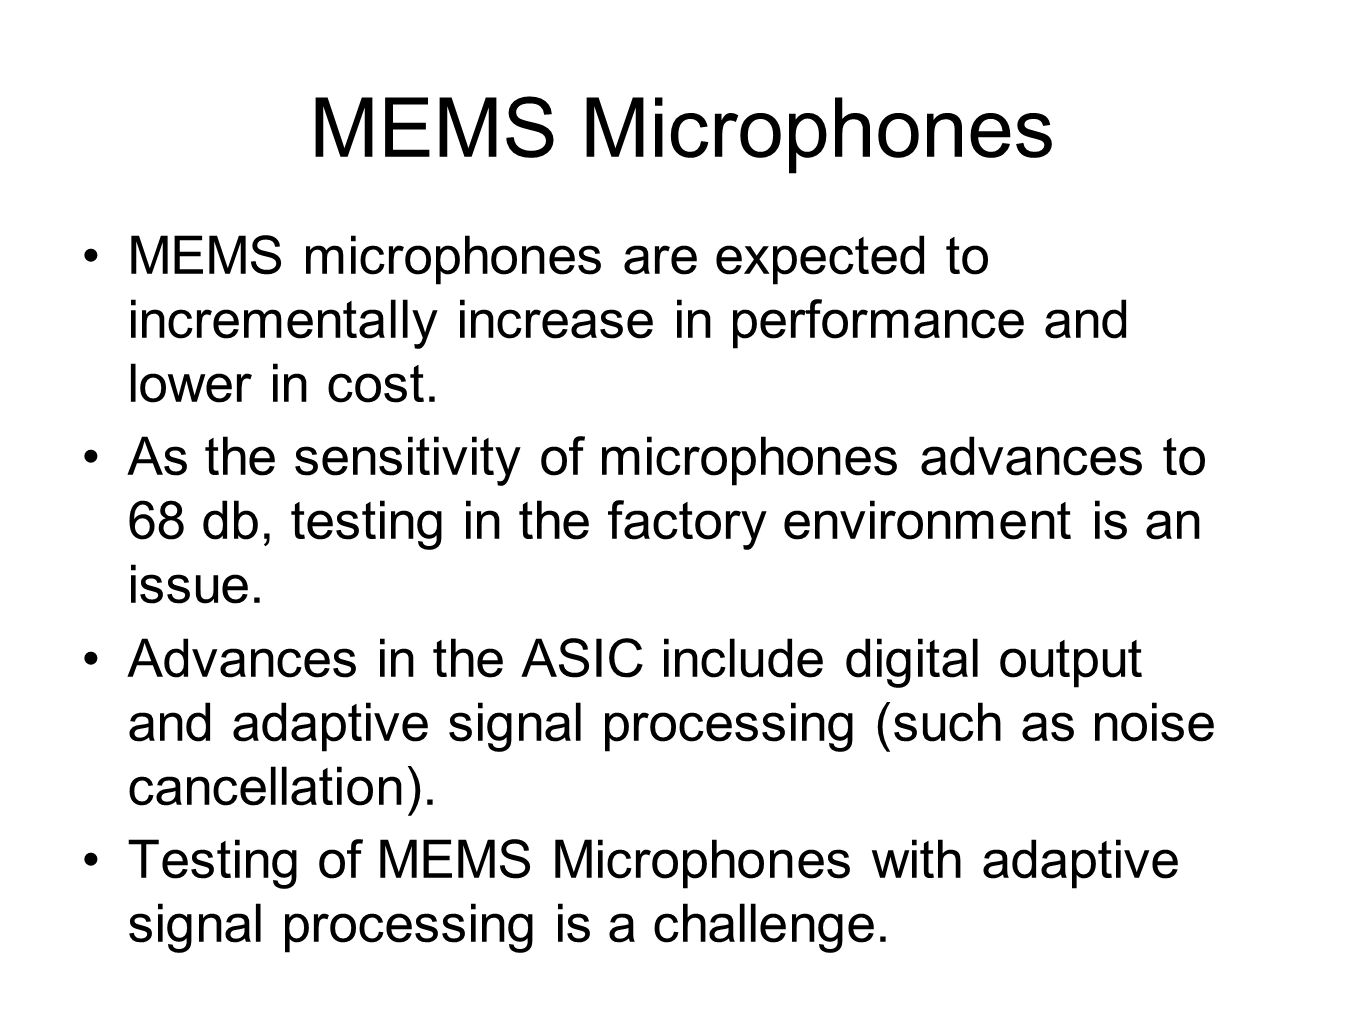 MEMS Microphones MEMS microphones are expected to incrementally increase in performance and lower in cost. As the sensitivity of microphones advances